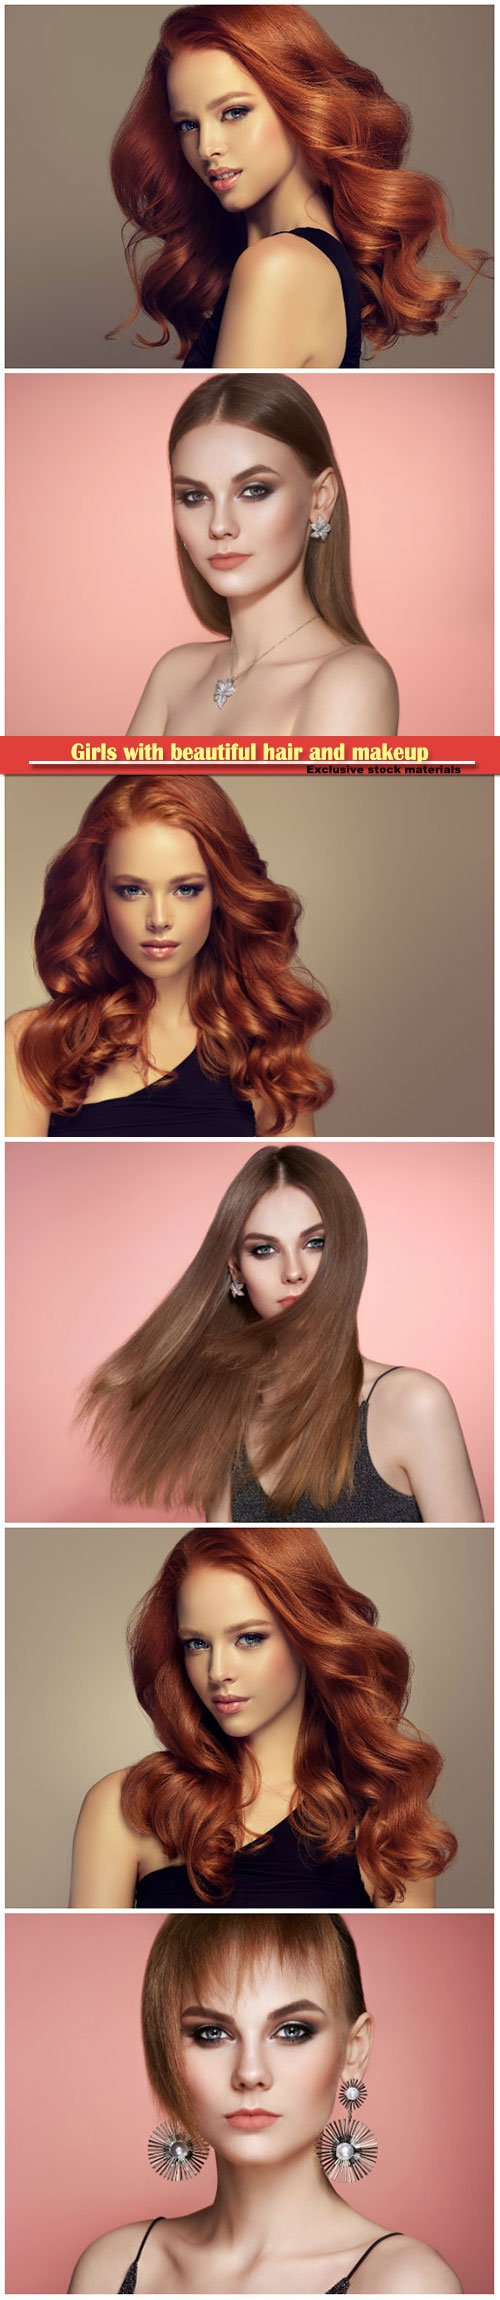 Girls with beautiful hair and makeup